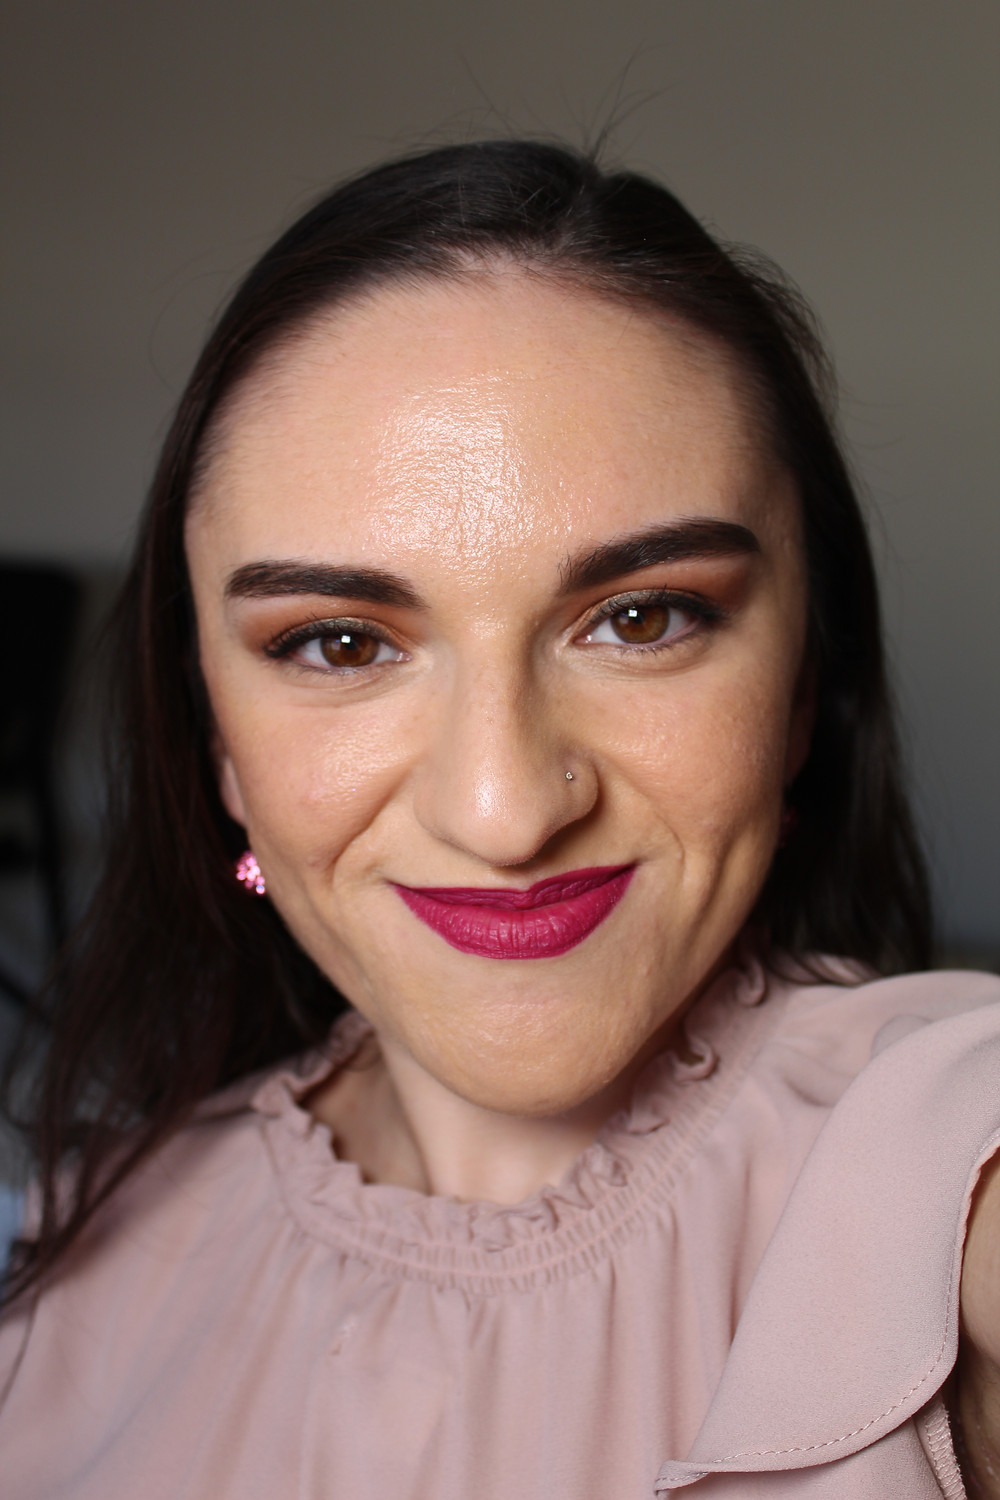 Carla is posing with a smirk to show off her makeup.